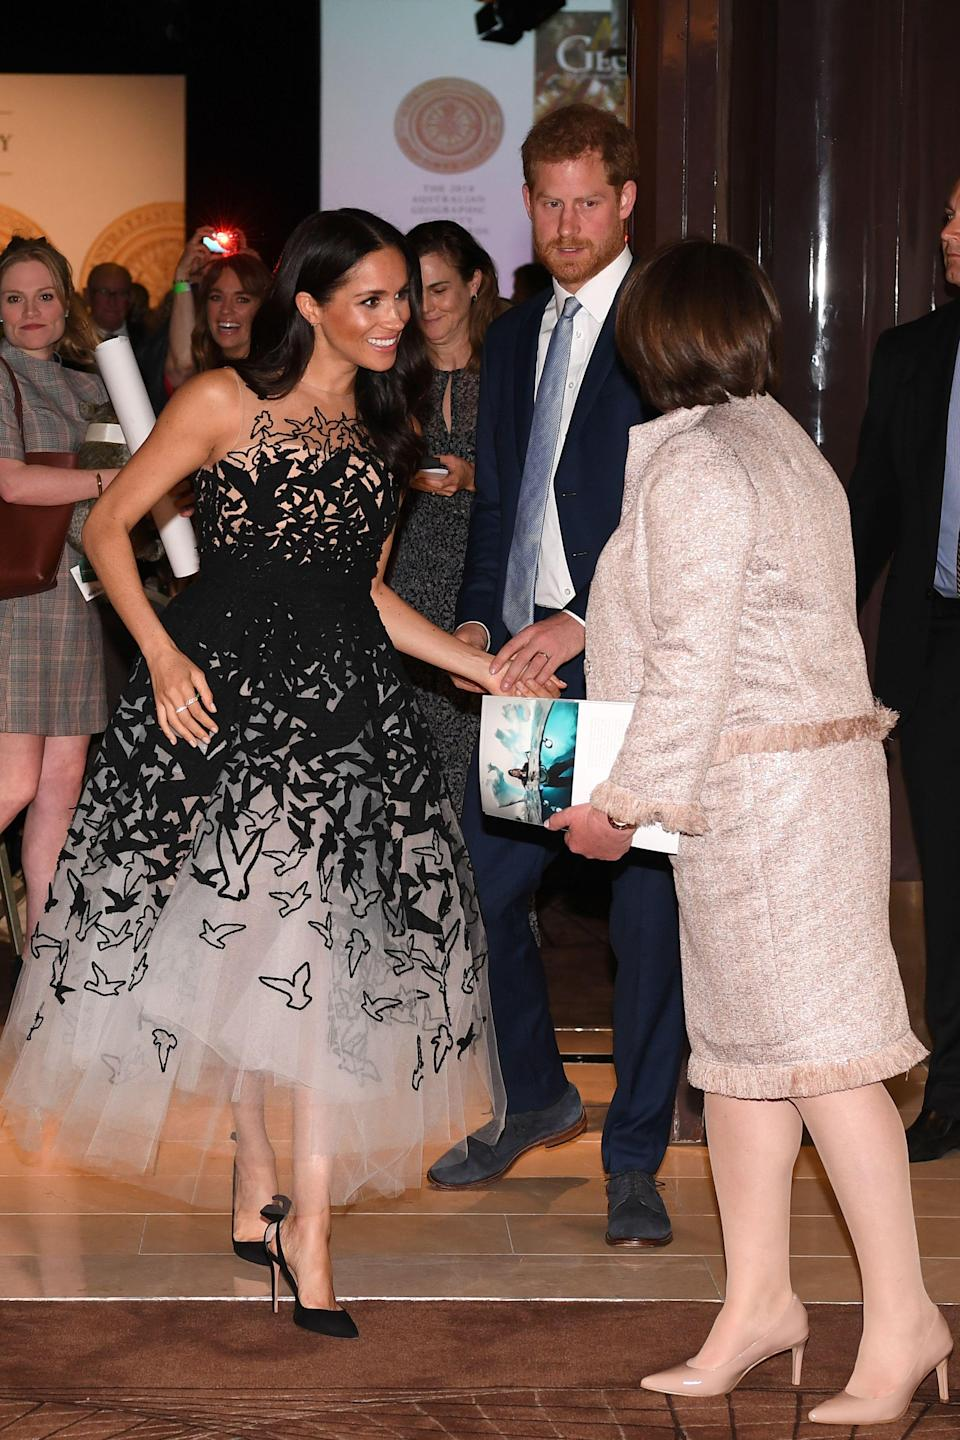 <p>The Duchess of Sussex saved her greatest look of the royal tour until October 26 for the Australian Geographic Society Gala Awards at the Shangri-La Hotel in Sydney. The cold-shoulder tulle gown is from Oscar de la Renta's pre-AW18 collection and she finished the Hollywood-worthy look with soft waves and her go-to £571 Tabitha Simmons shoes. <em>[Photo: Getty]</em> </p>